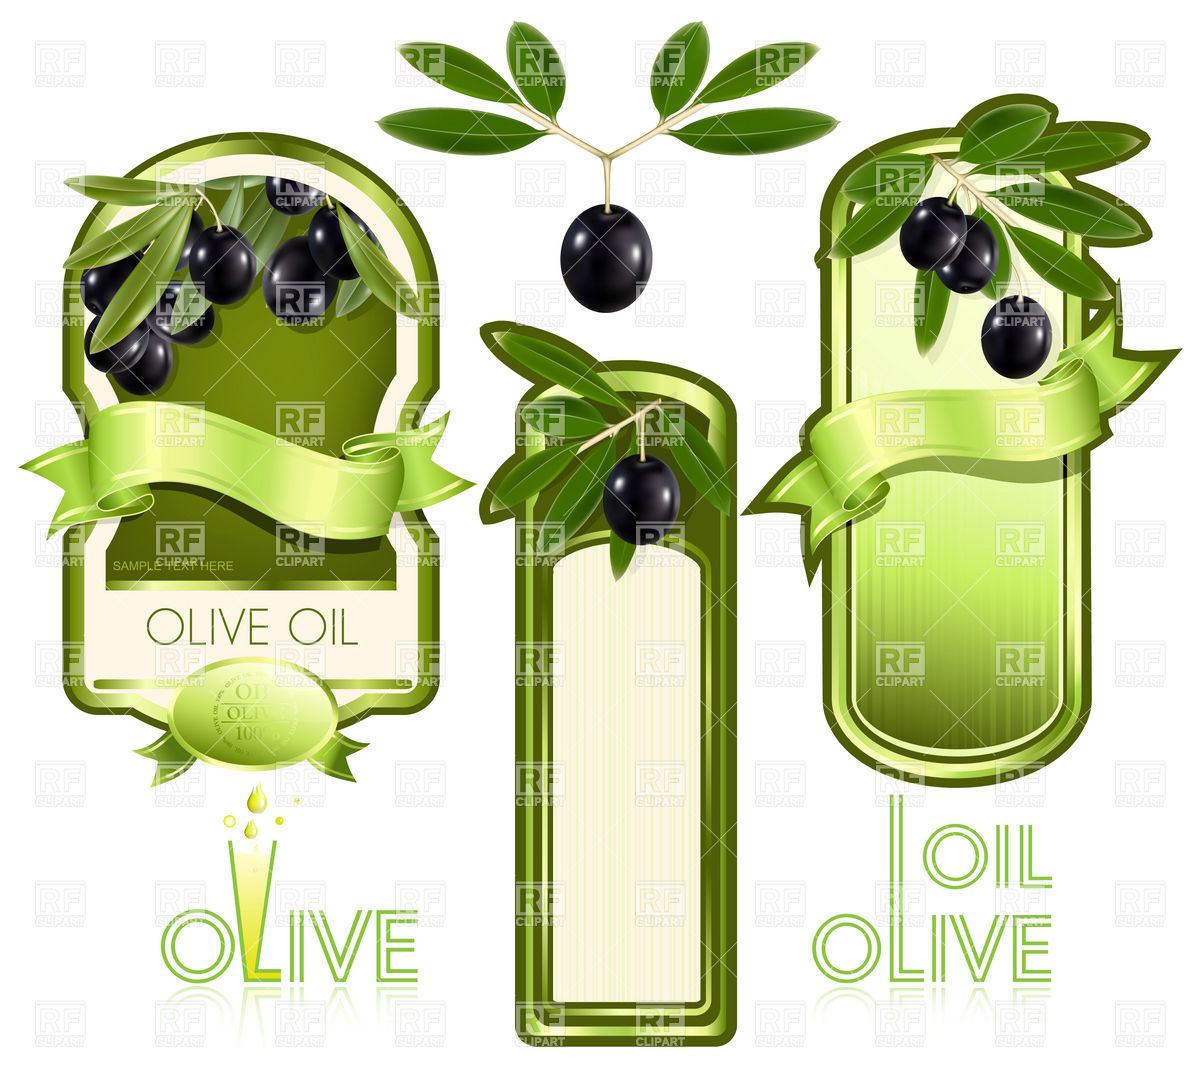 Blank template of label for olive oil Vector Clipart Image #5250